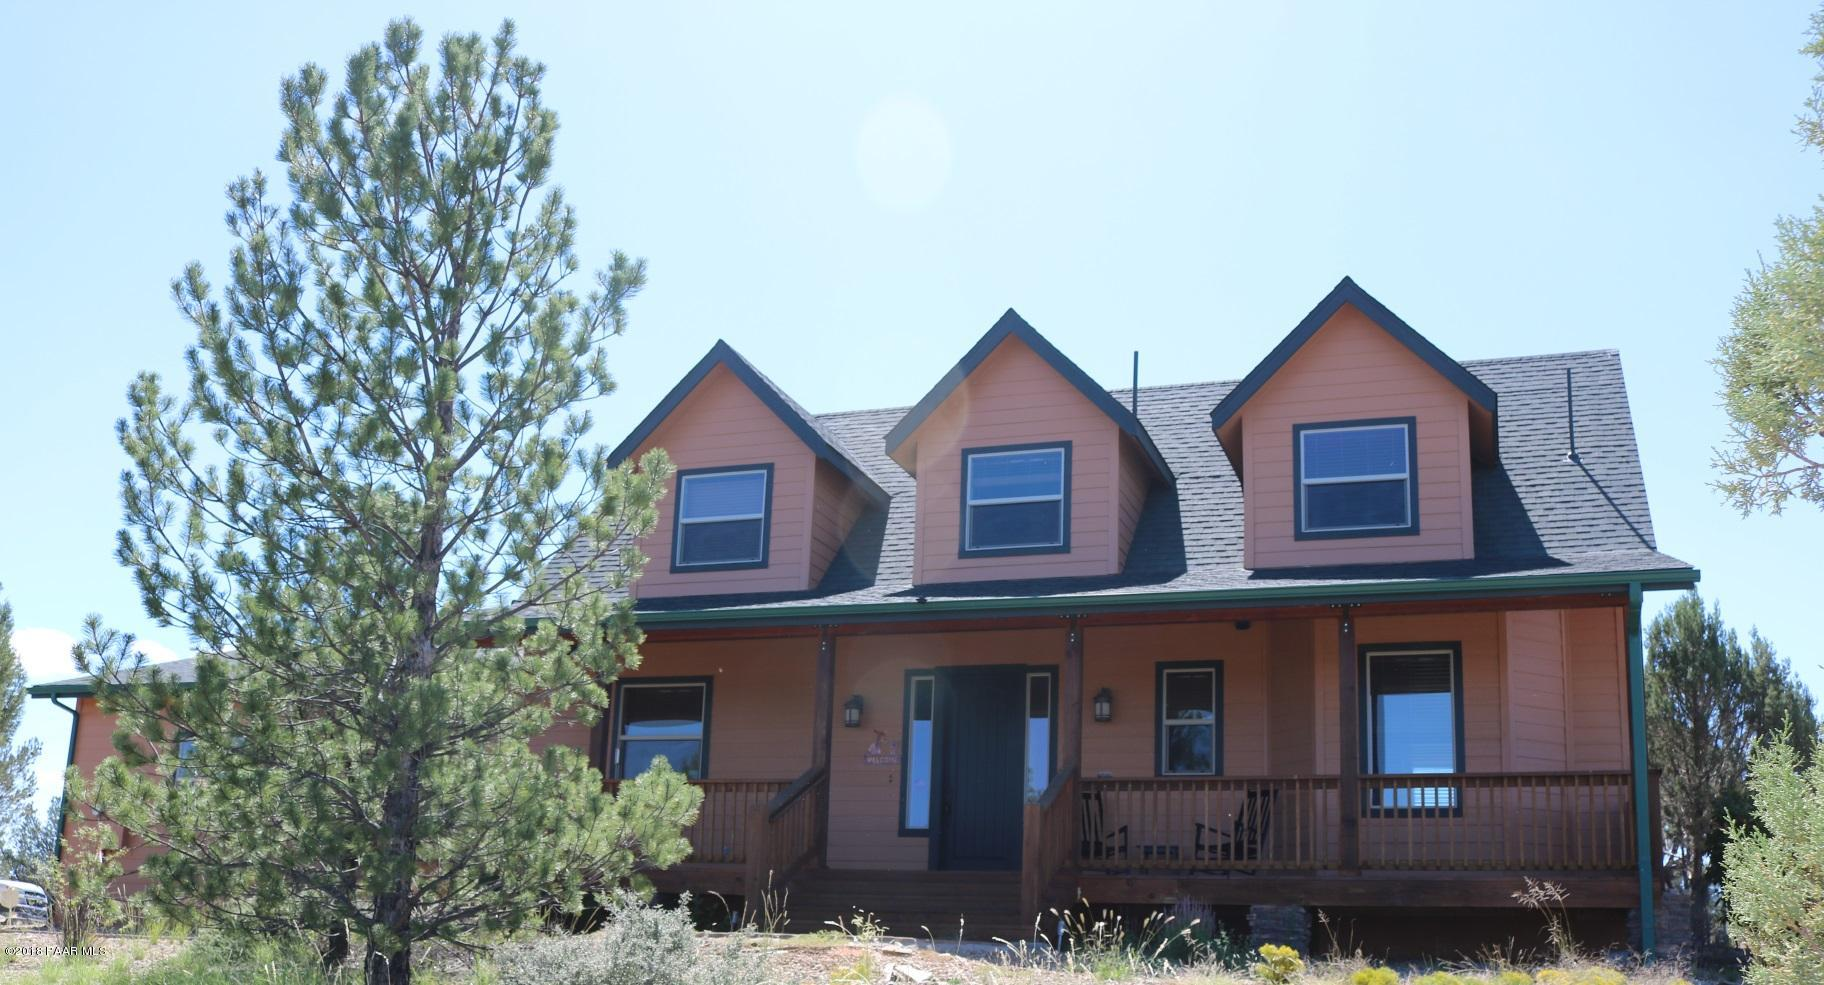 7875 W Meadowlark Road, Prescott, Arizona